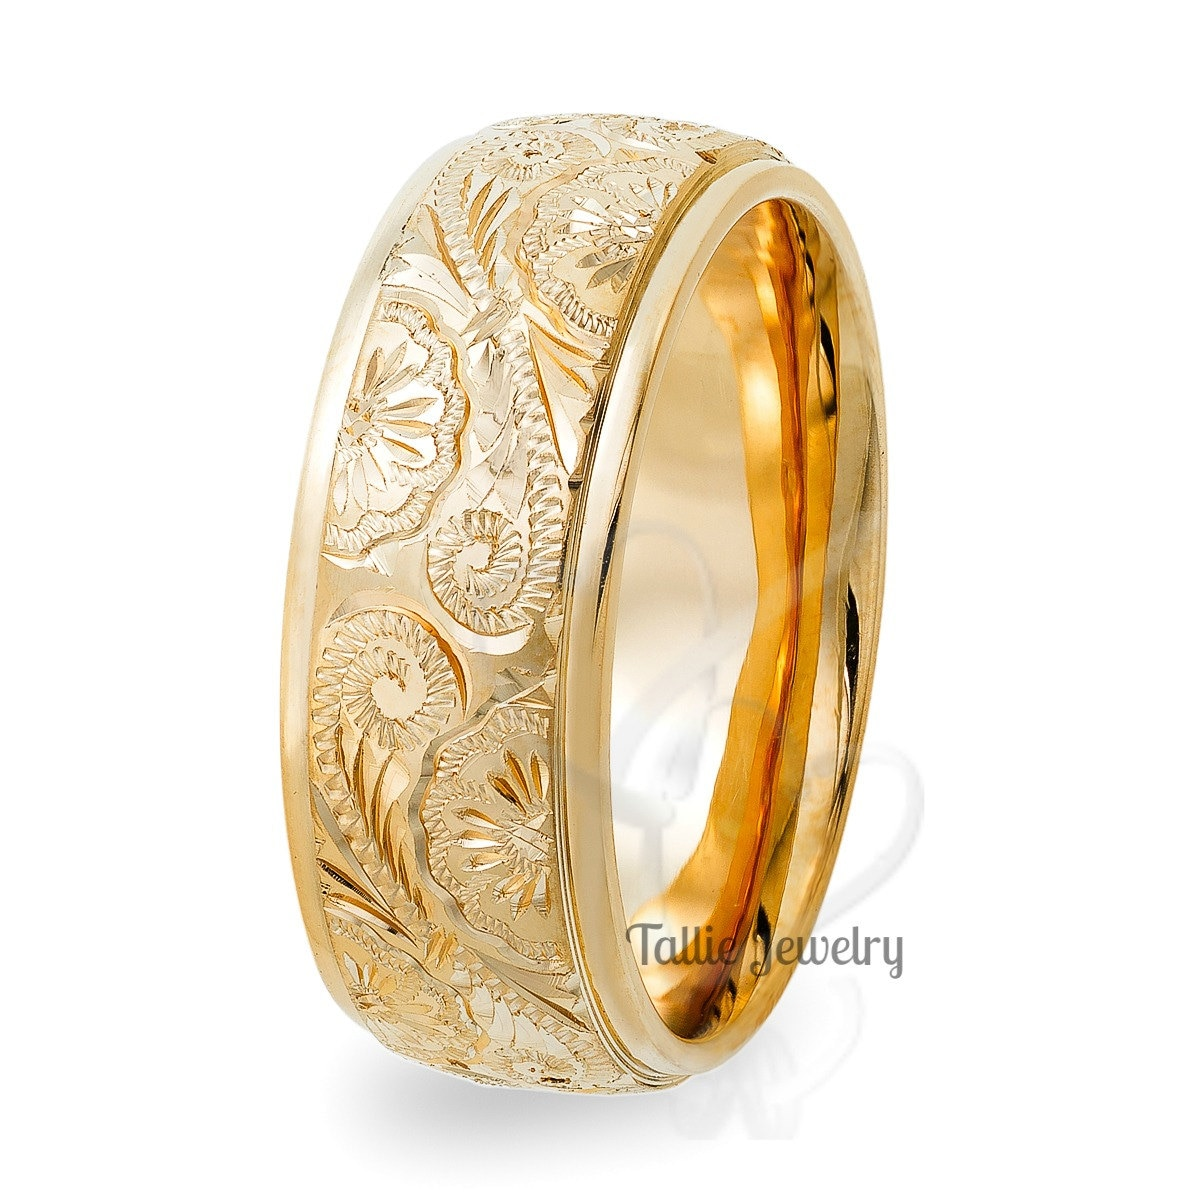 silver engraved beautiful sets sterling rings customized aijaja com of engravings fresh on ricksalerealty wedding ring